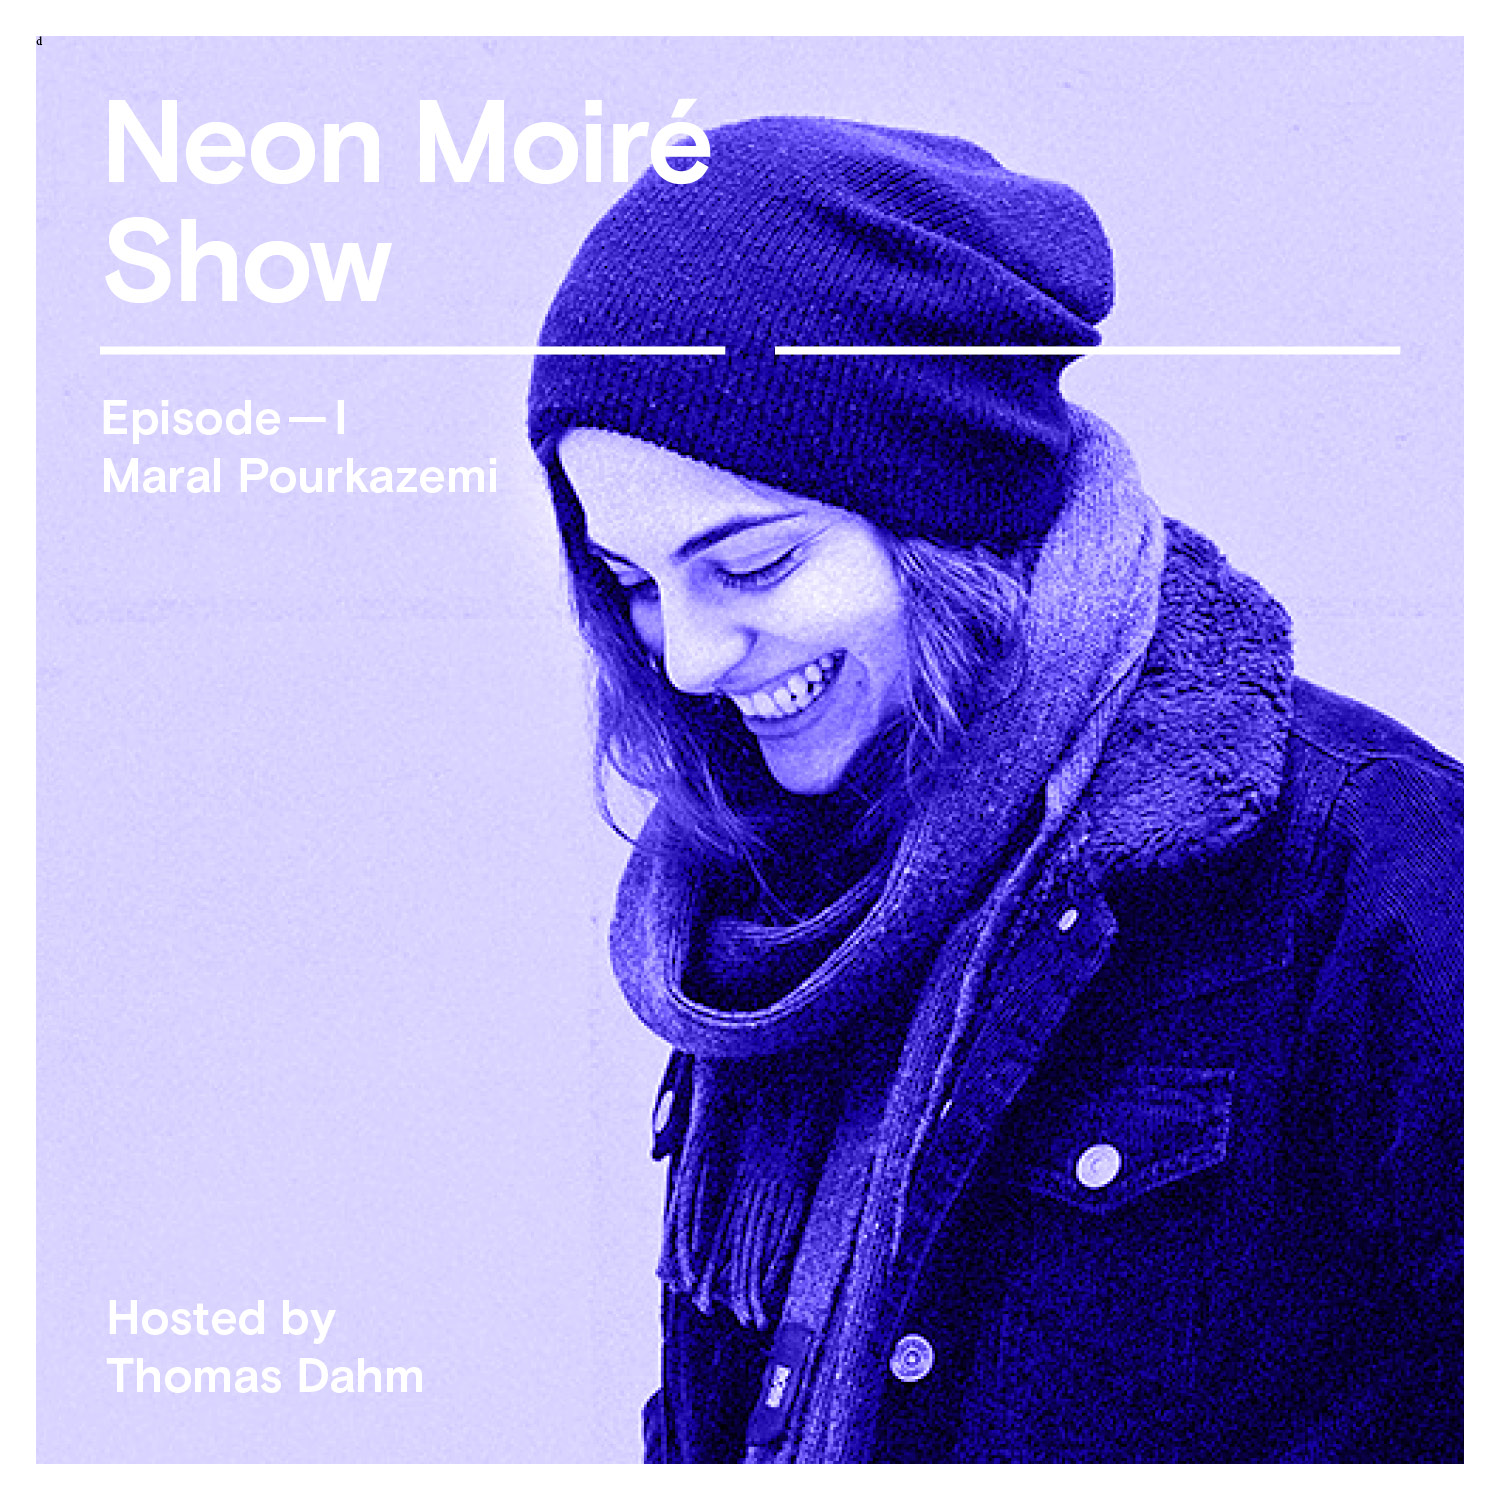 Neon Moiré Show, Episode 1 with Maral Pourkazemi